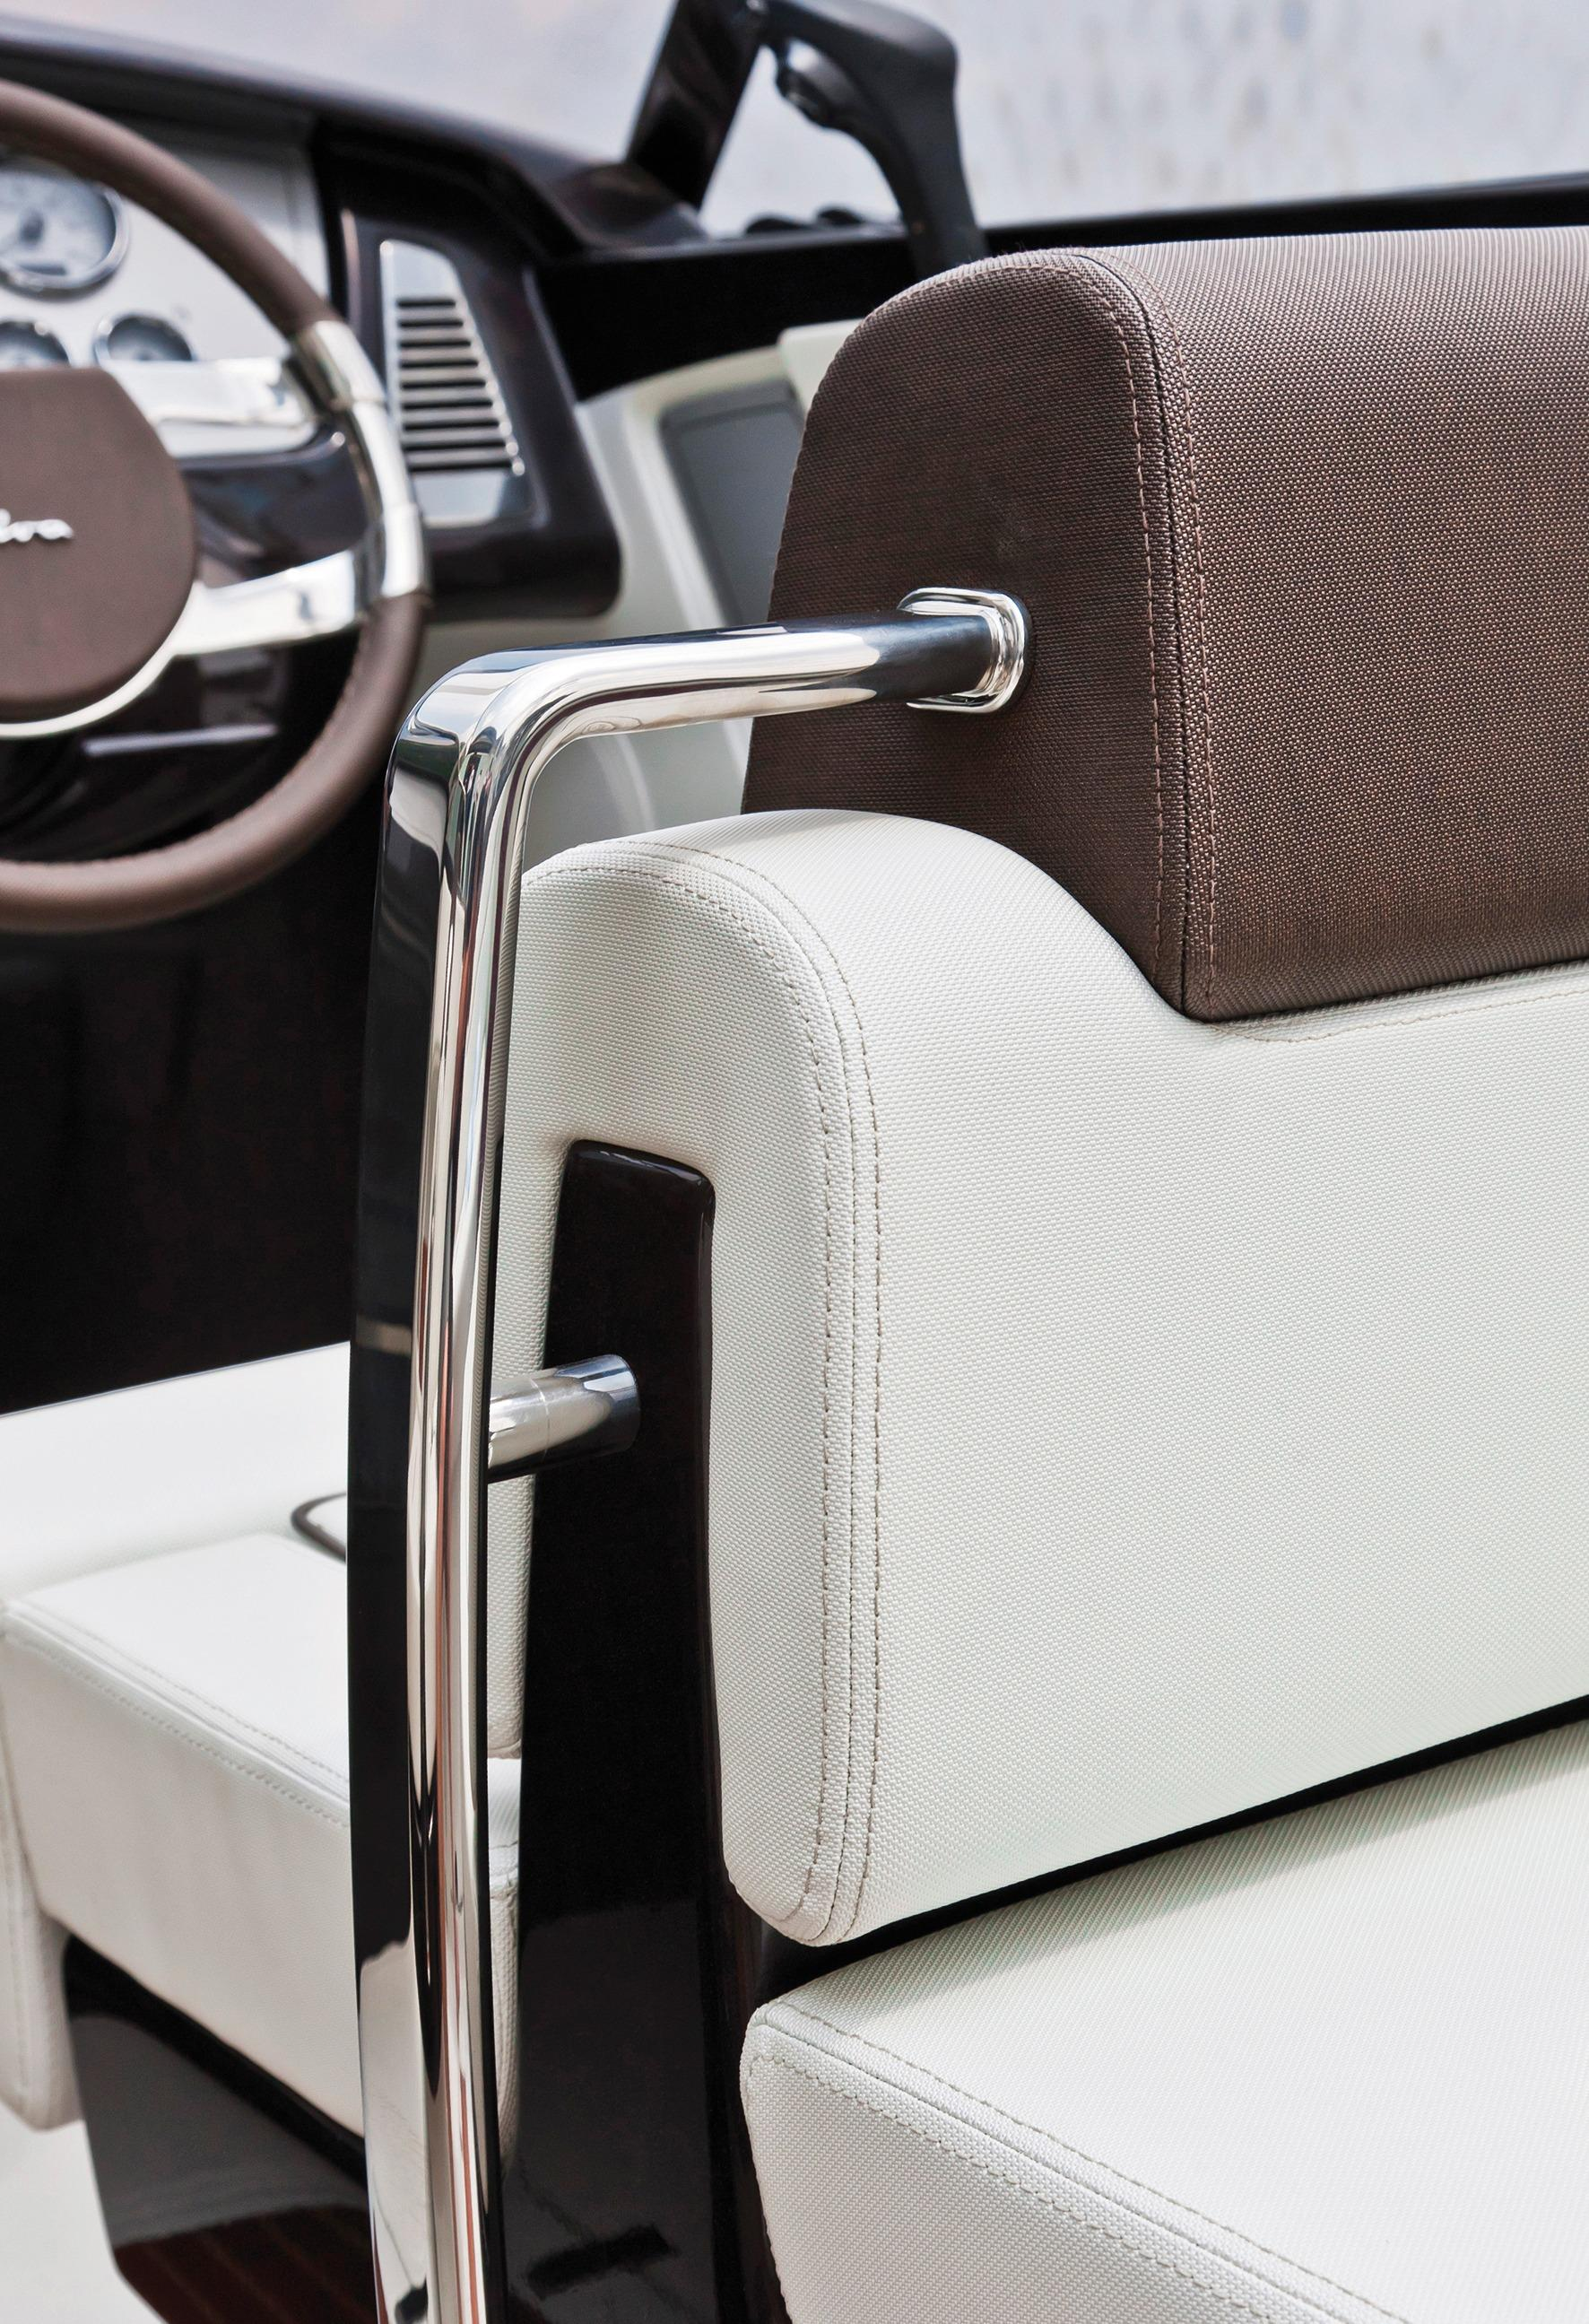 Manufacturer Provided Image: Riva Iseo Helm Seat